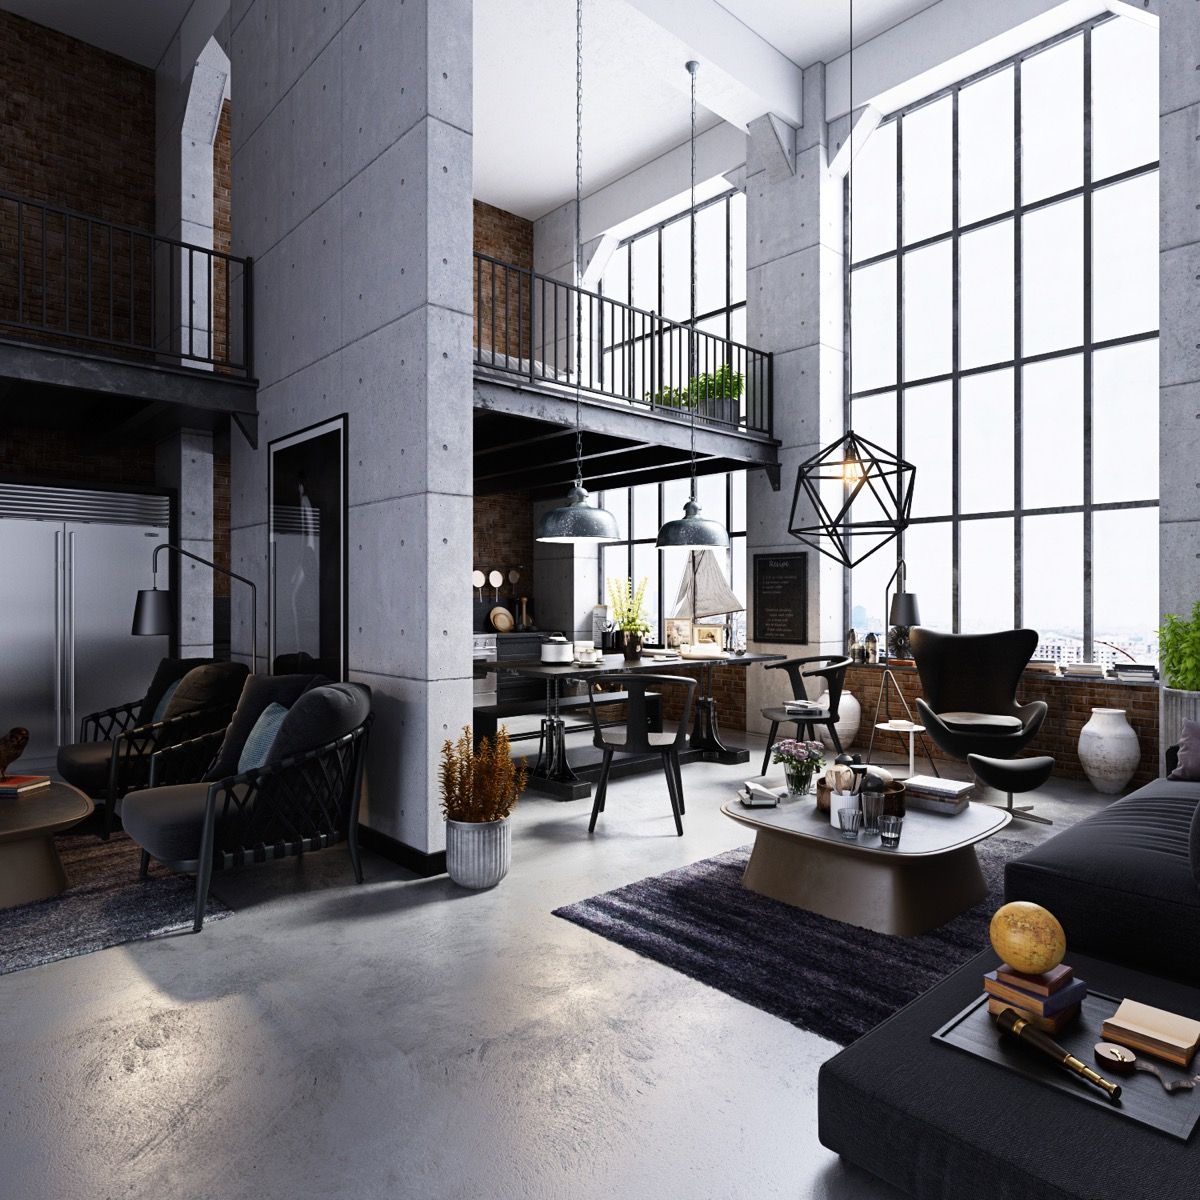 15 Amazing Interior Design Ideas For Modern Loft: Industrial Style Living Room Design: The Essential Guide